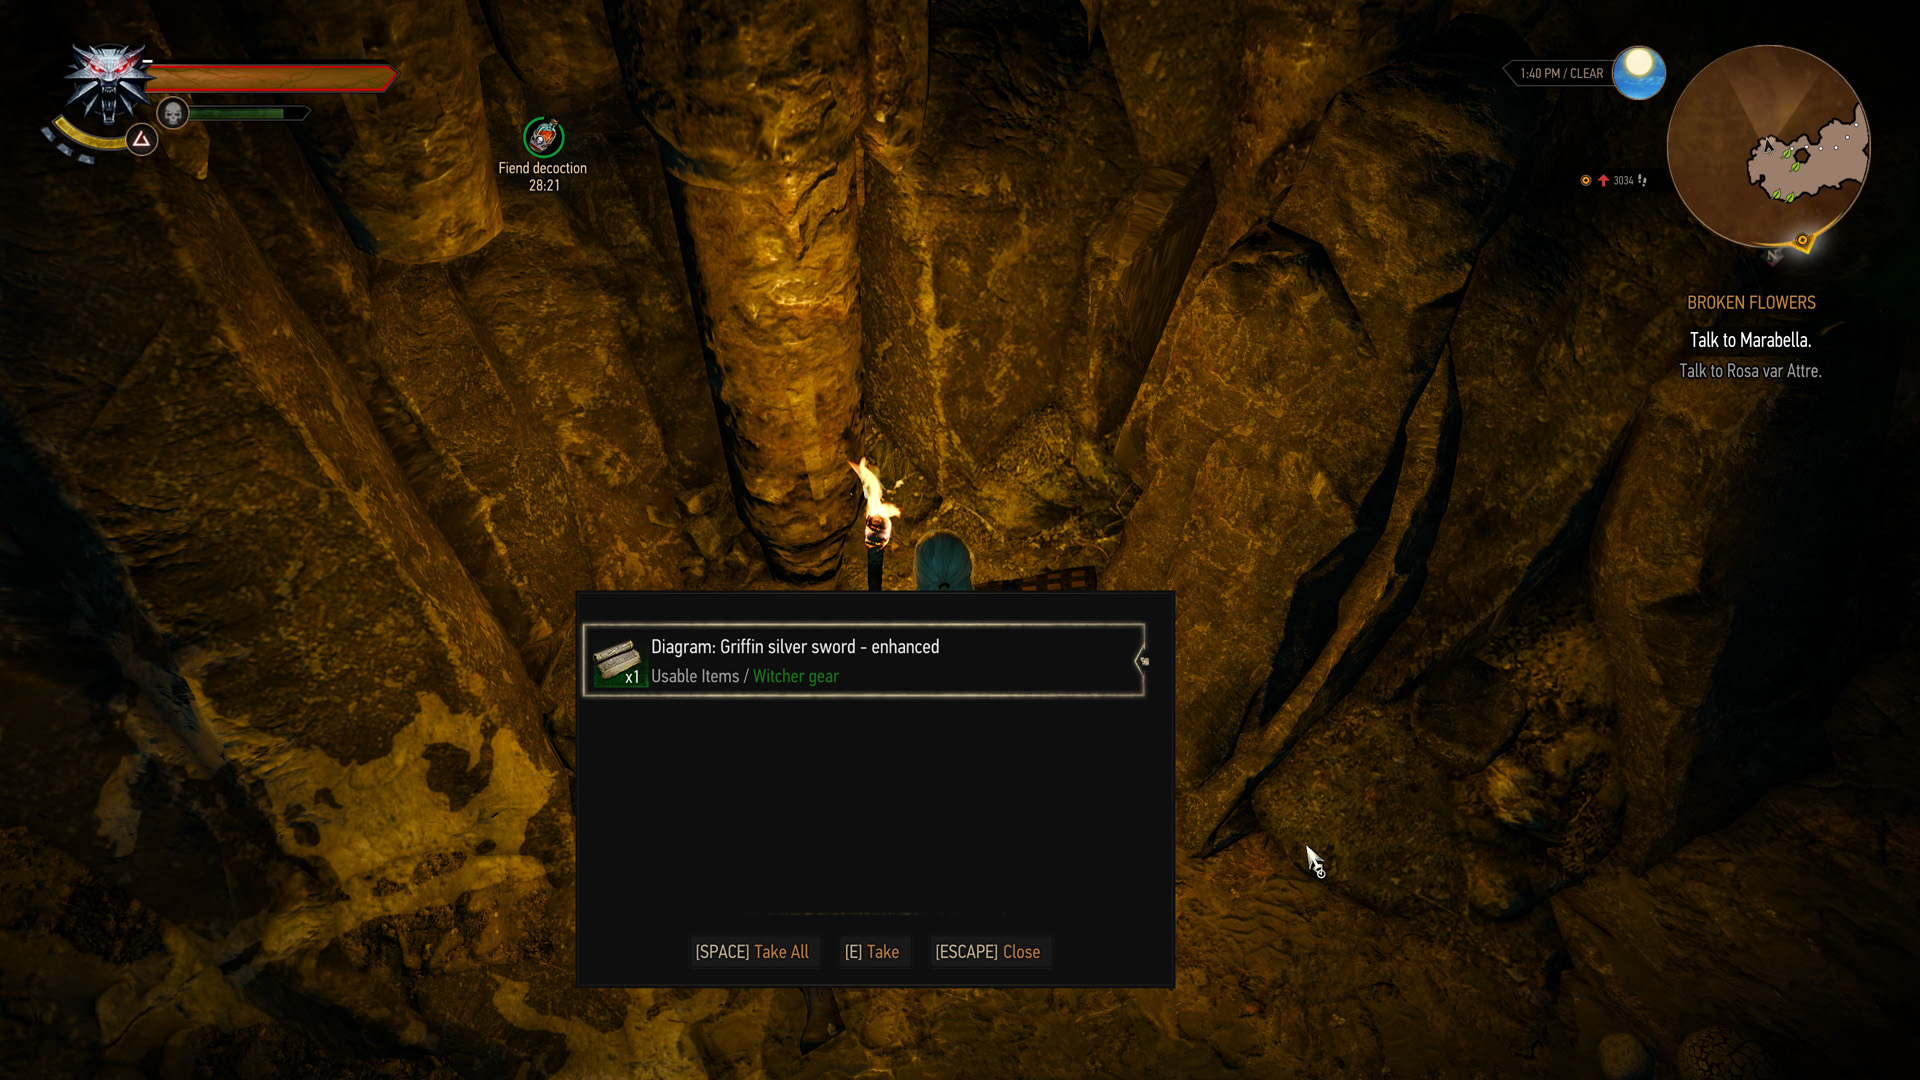 The Witcher 3 - Where to Find the Griffin School Gear   USgamer